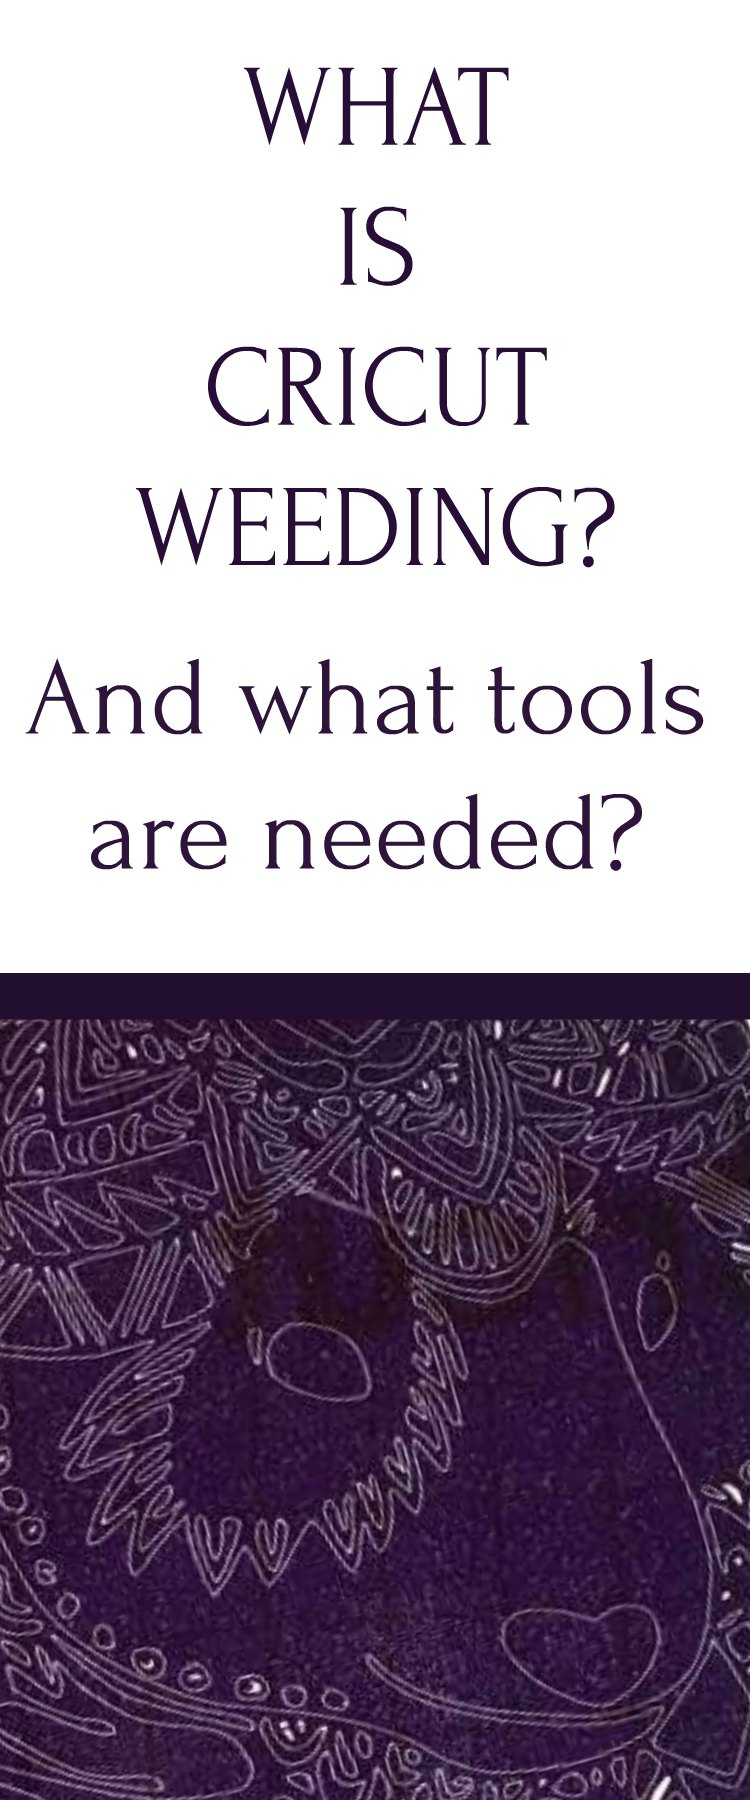 What Is Cricut Weeding? Find out how to become a Cricut Weeding expert with tips and tricks. Cricut weeding projects are easy and FUN!